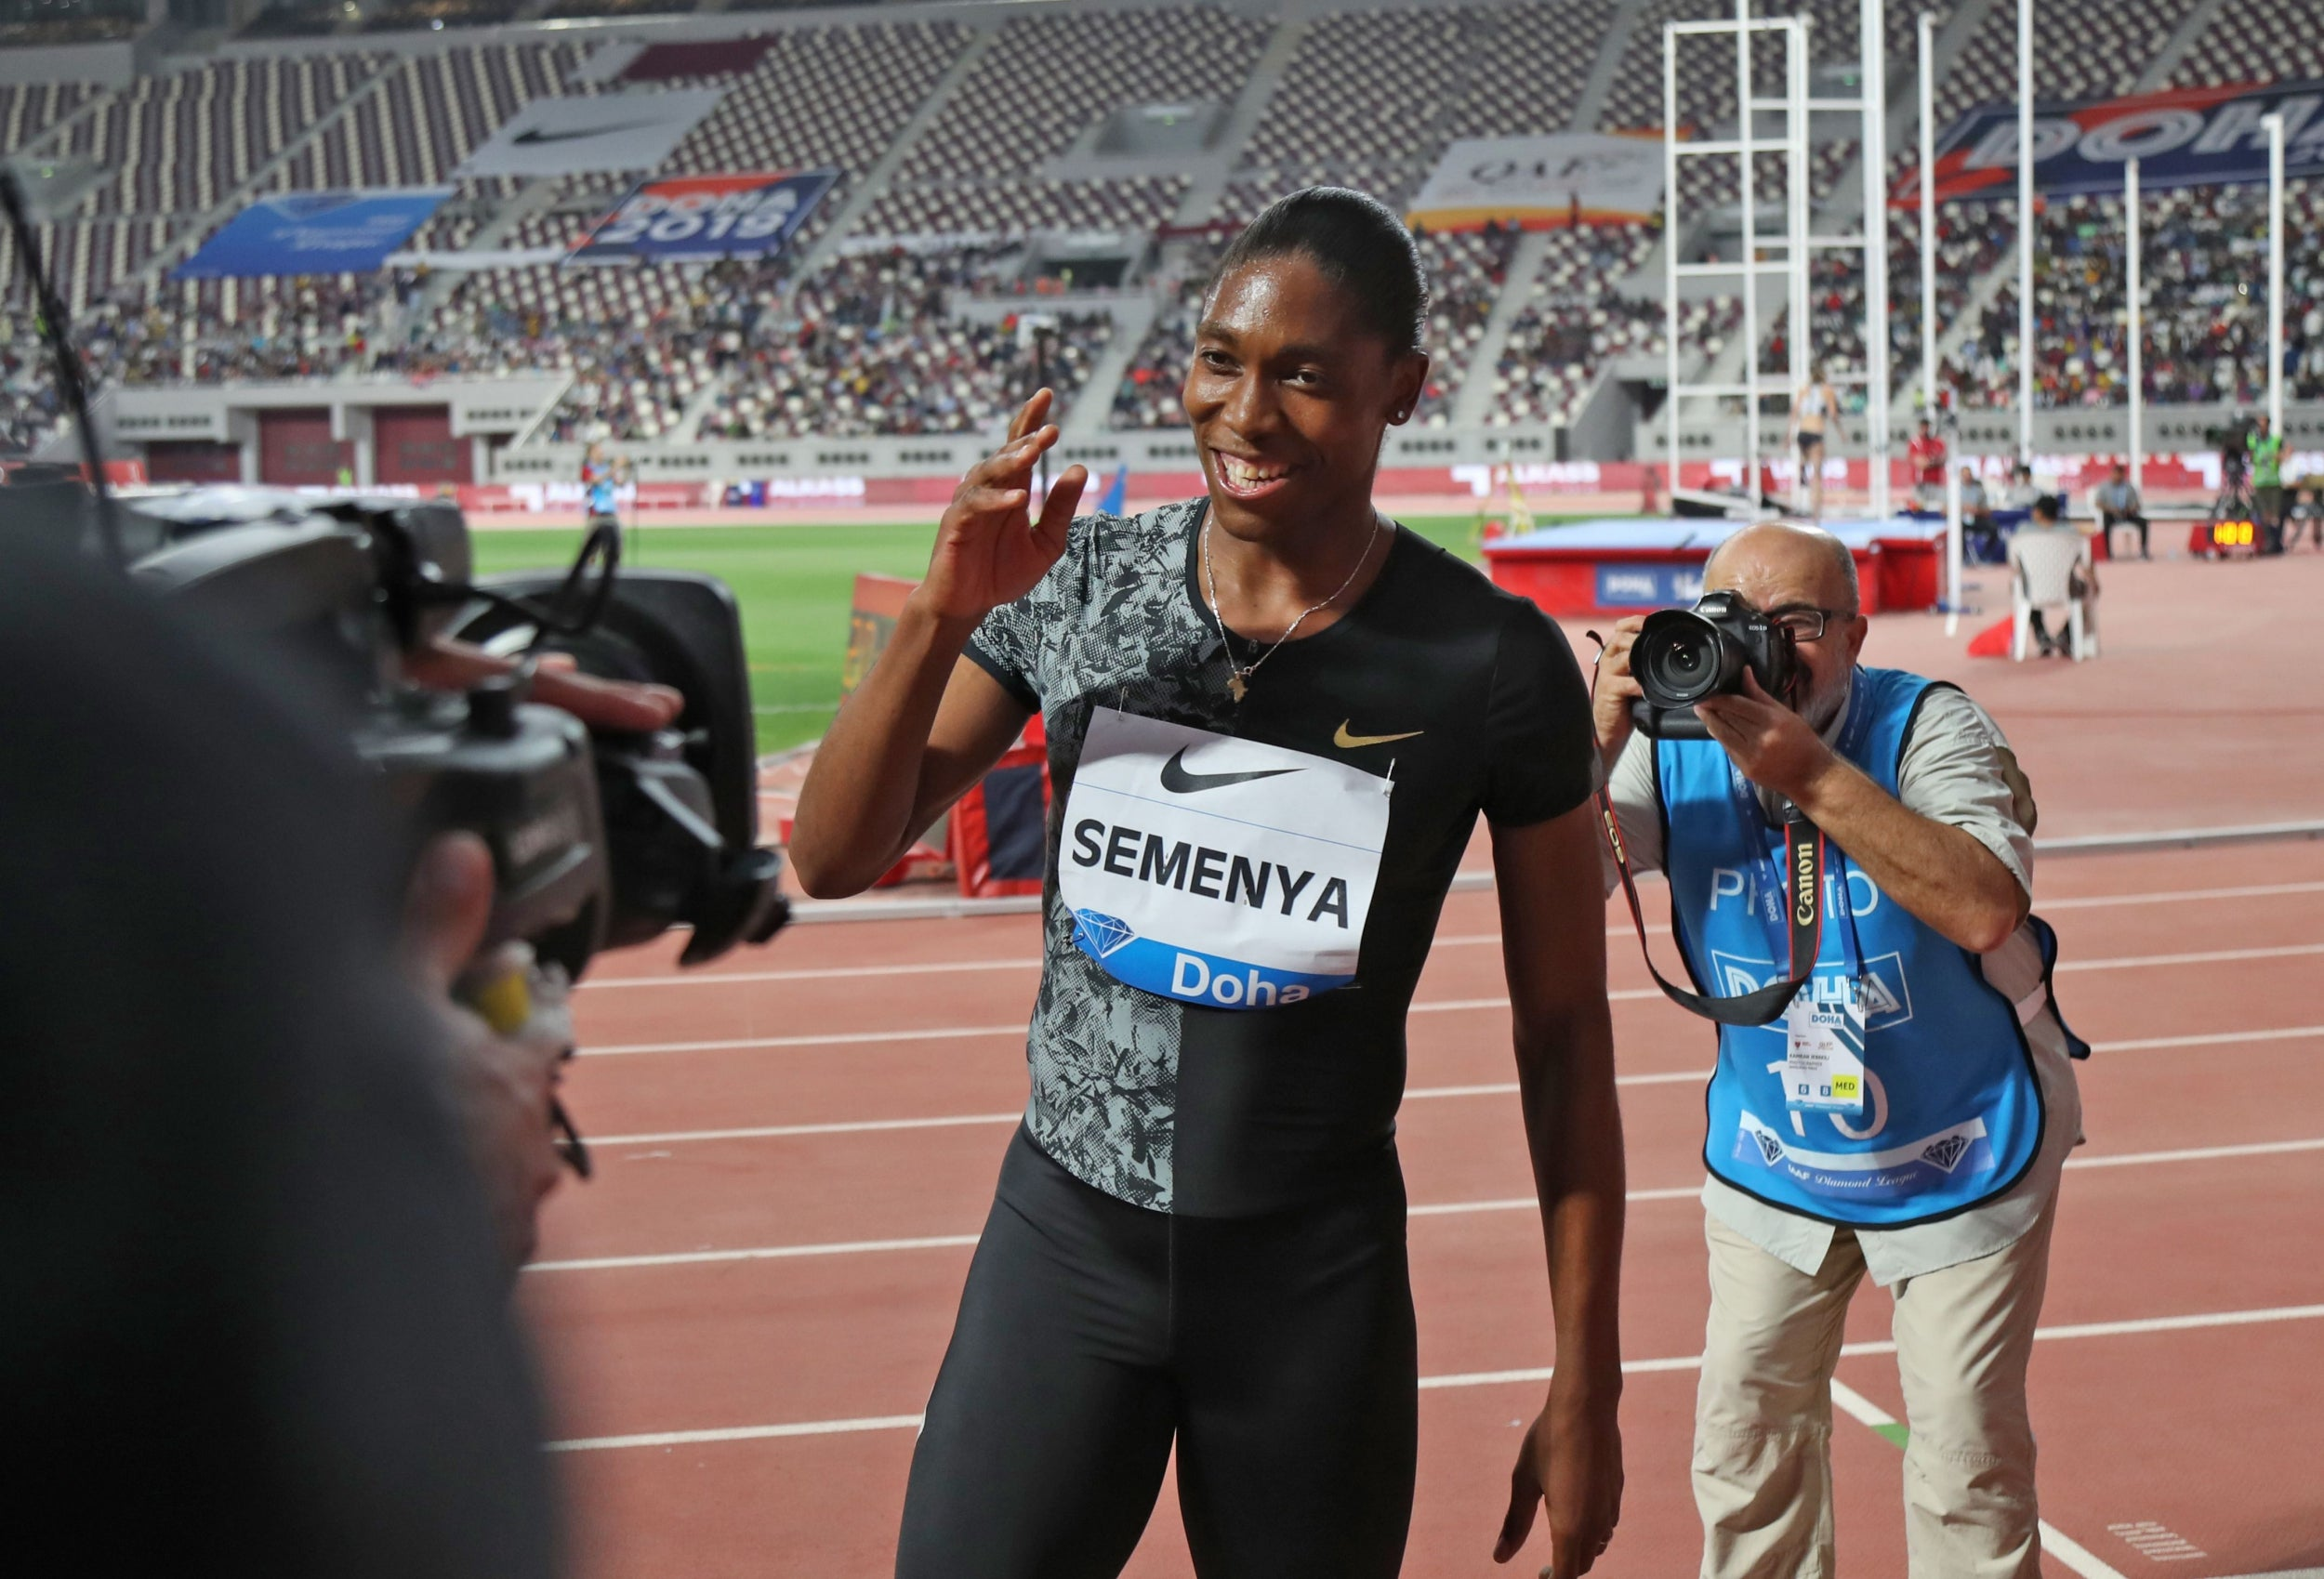 Caster Semenya to race in 3,000m at Diamond League Prefontaine Classic without lowering testosterone levels